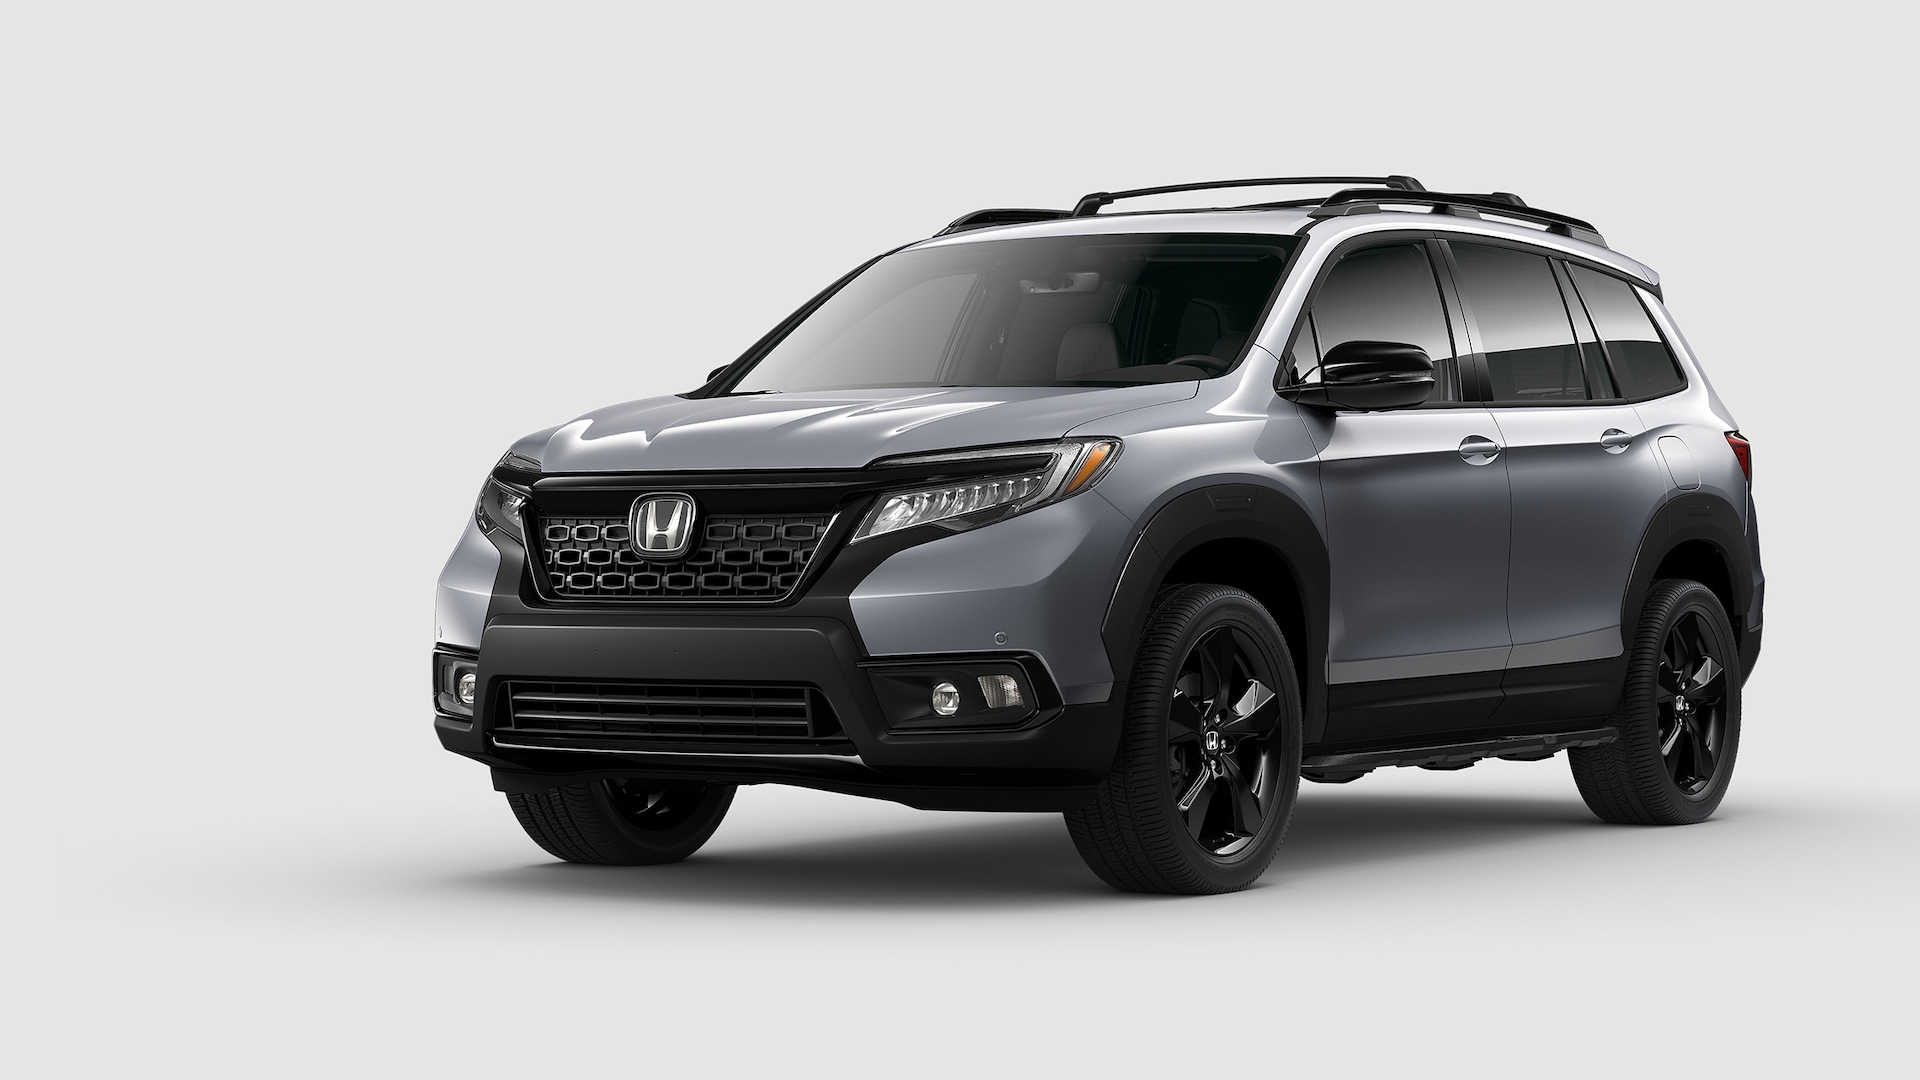 Front passenger-side view of the 2020 Honda Passport Elite in Lunar Silver Metallic with Honda Genuine Accessories.